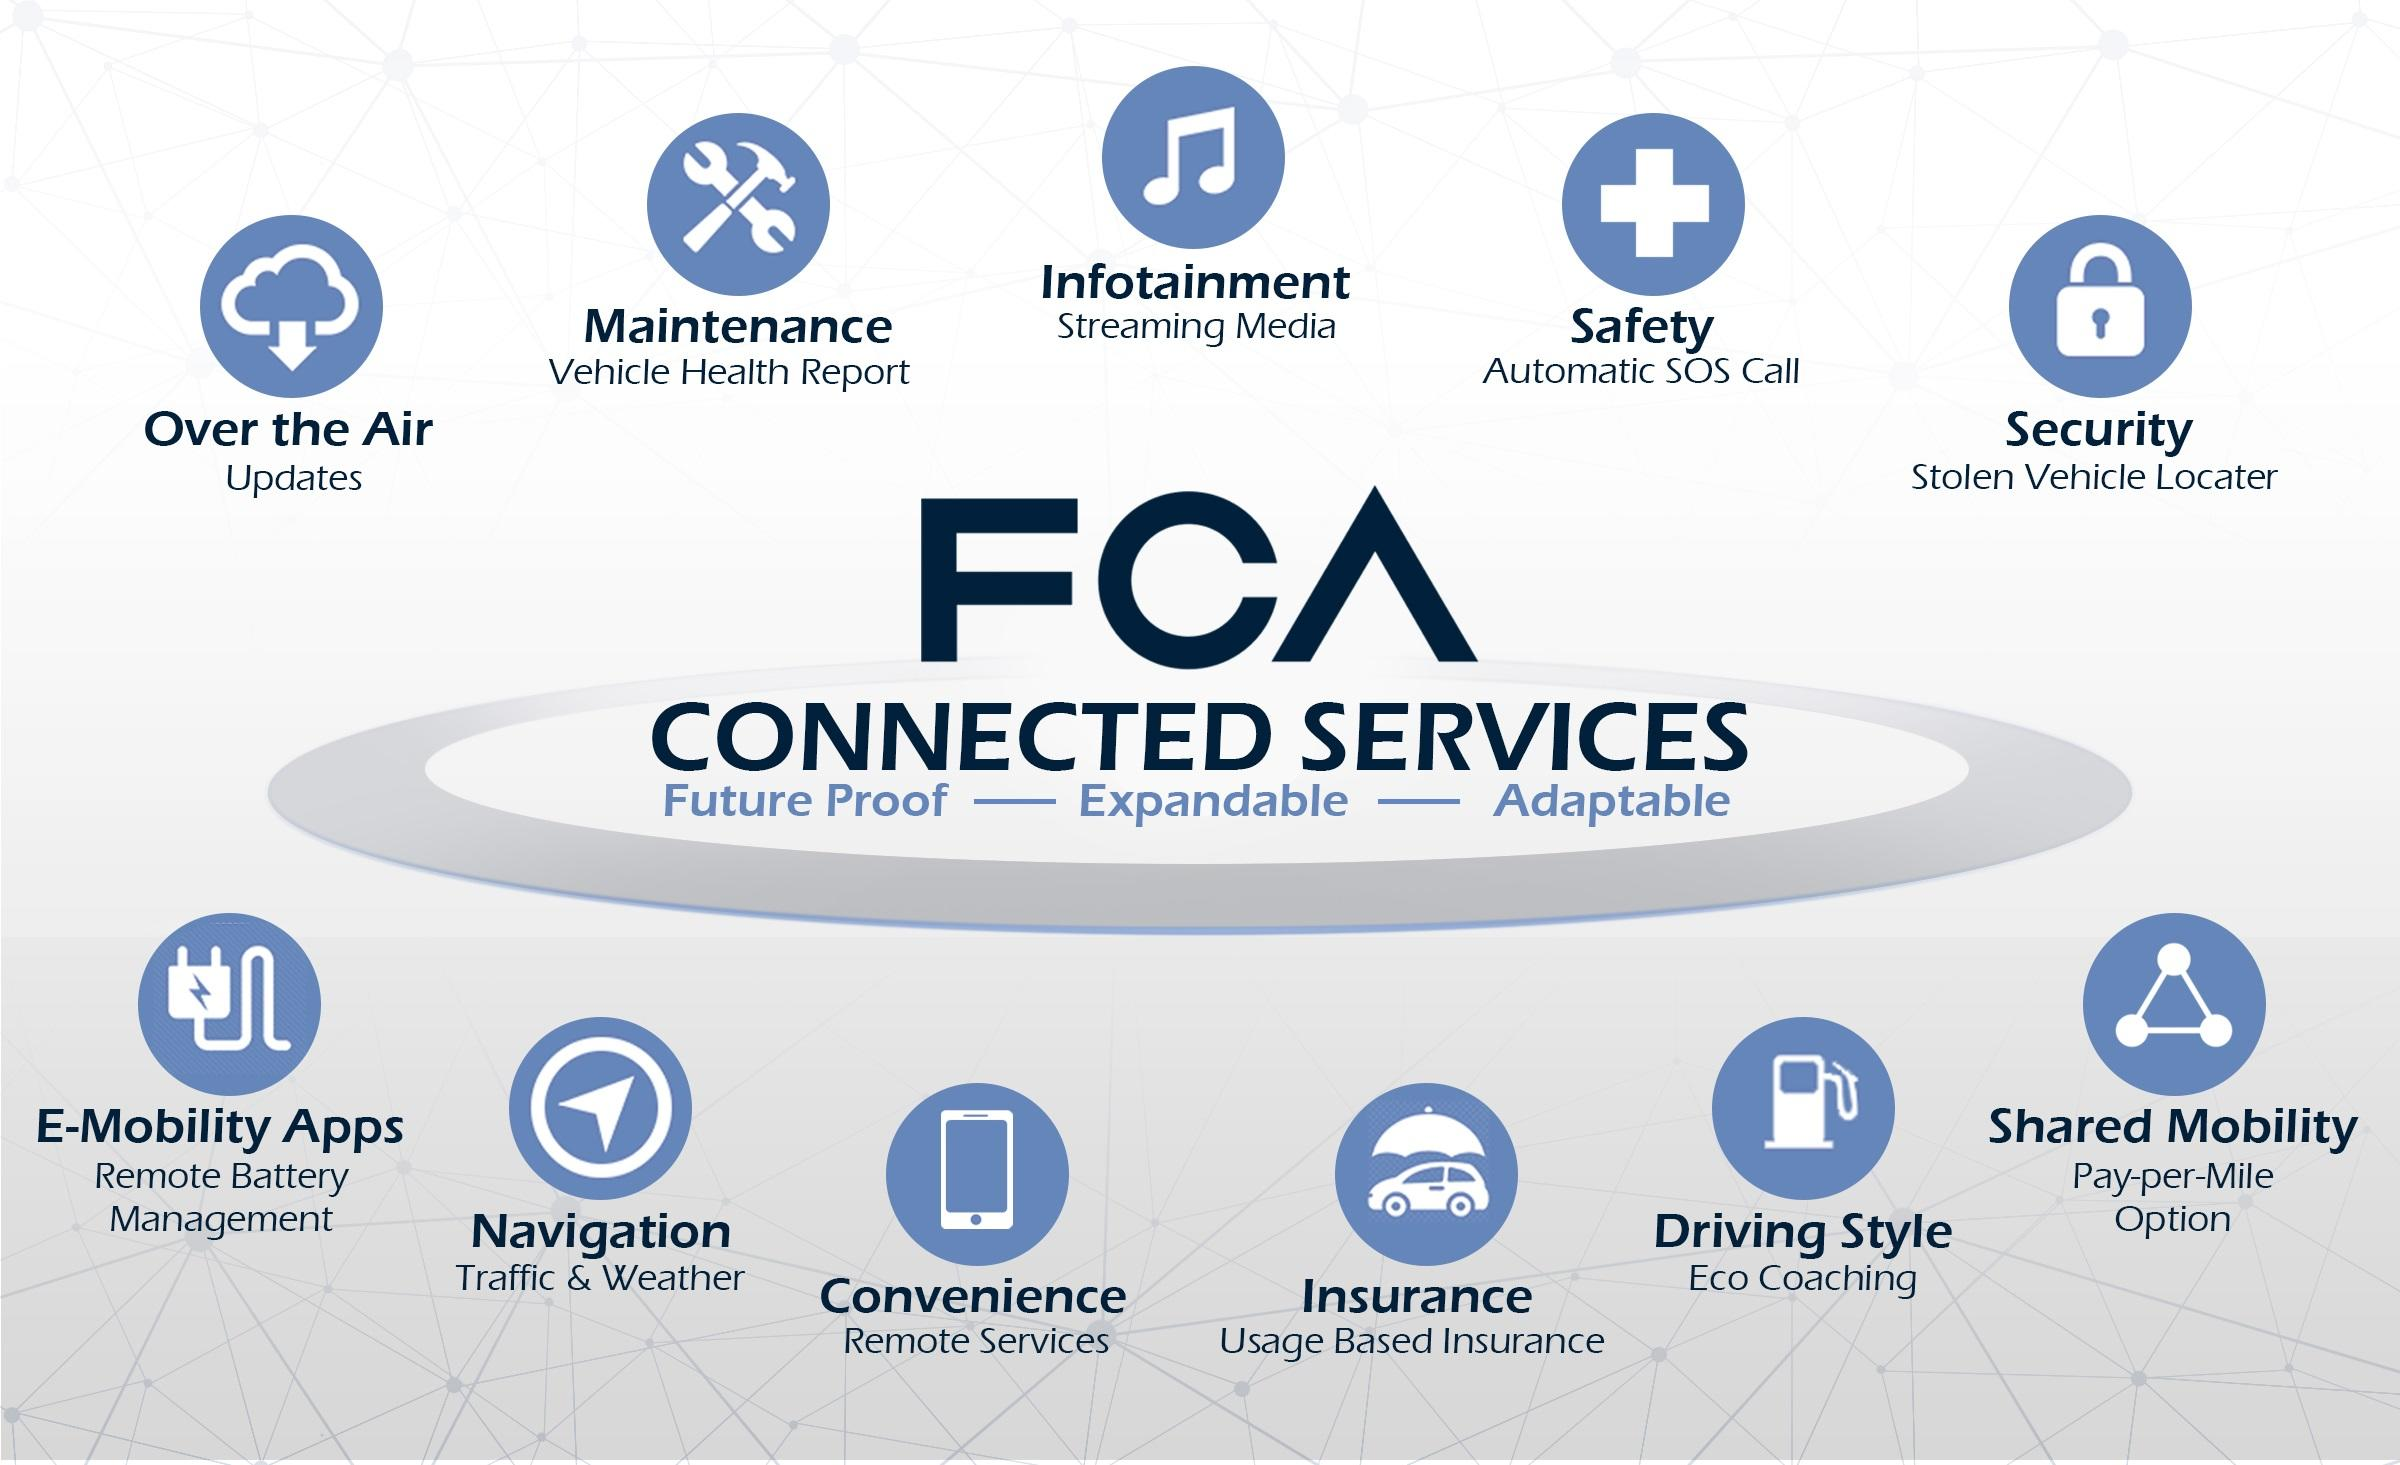 fca-connected-services